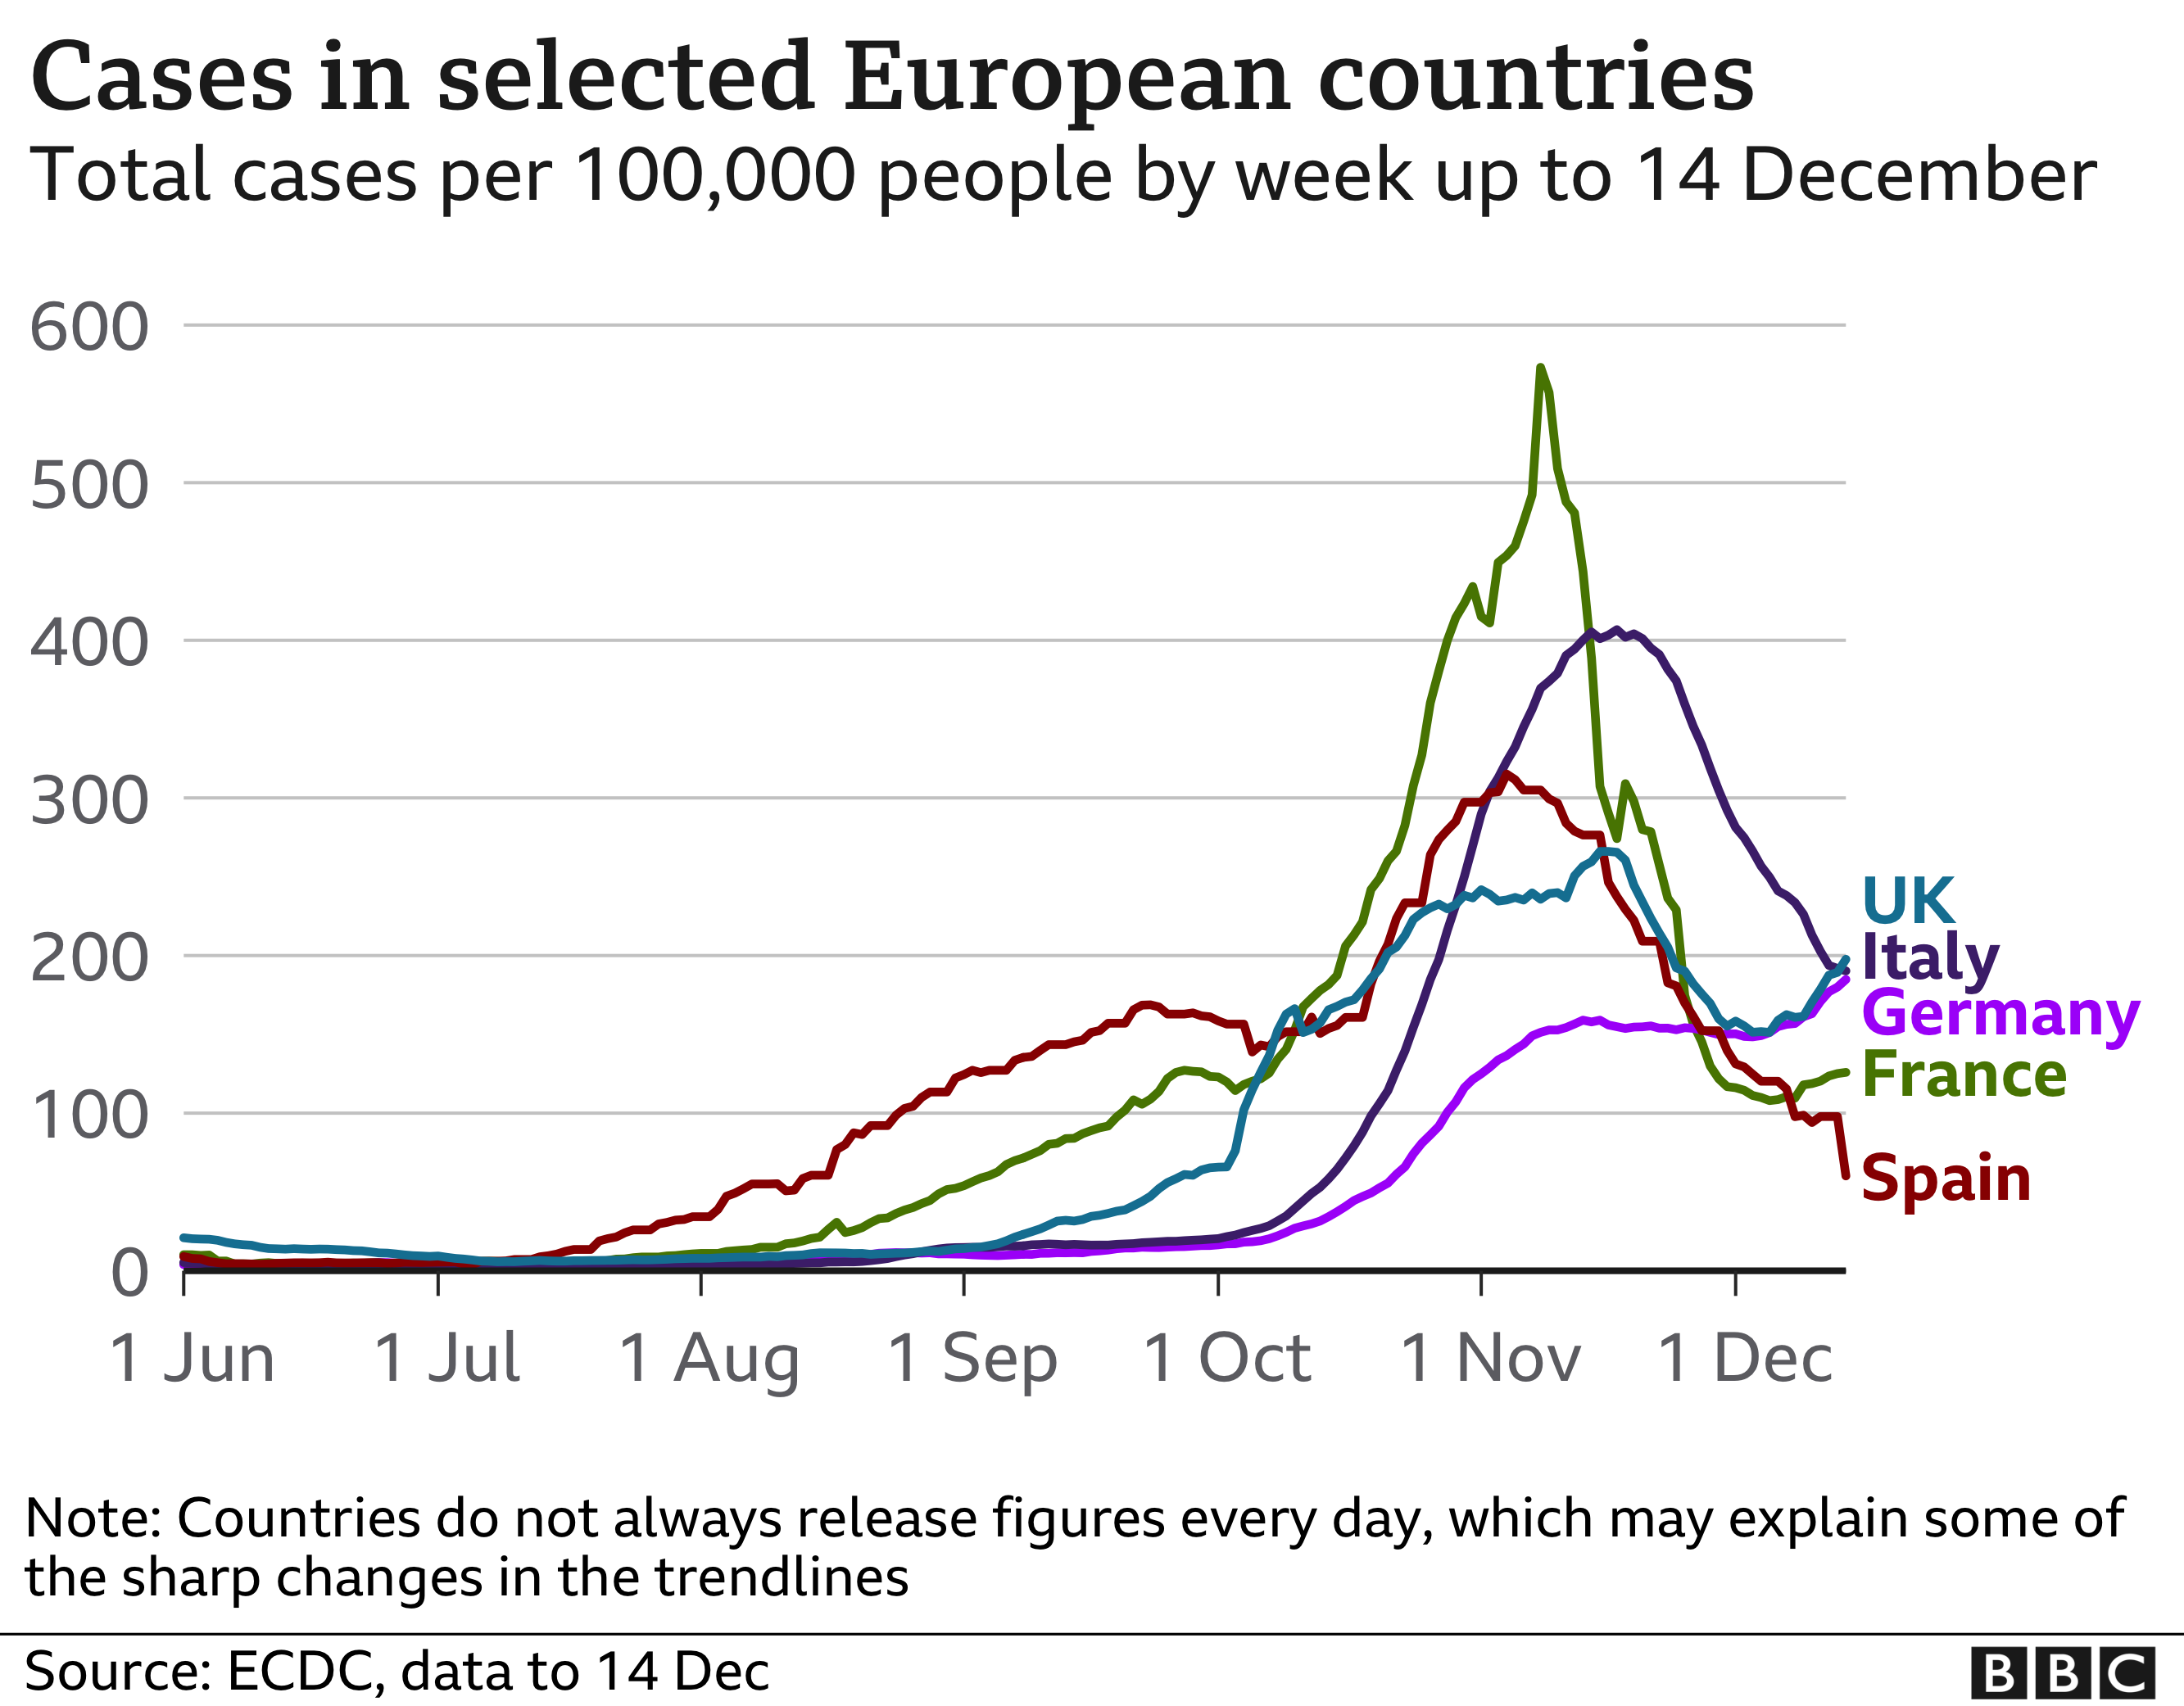 Graph showing cases in selected European countries